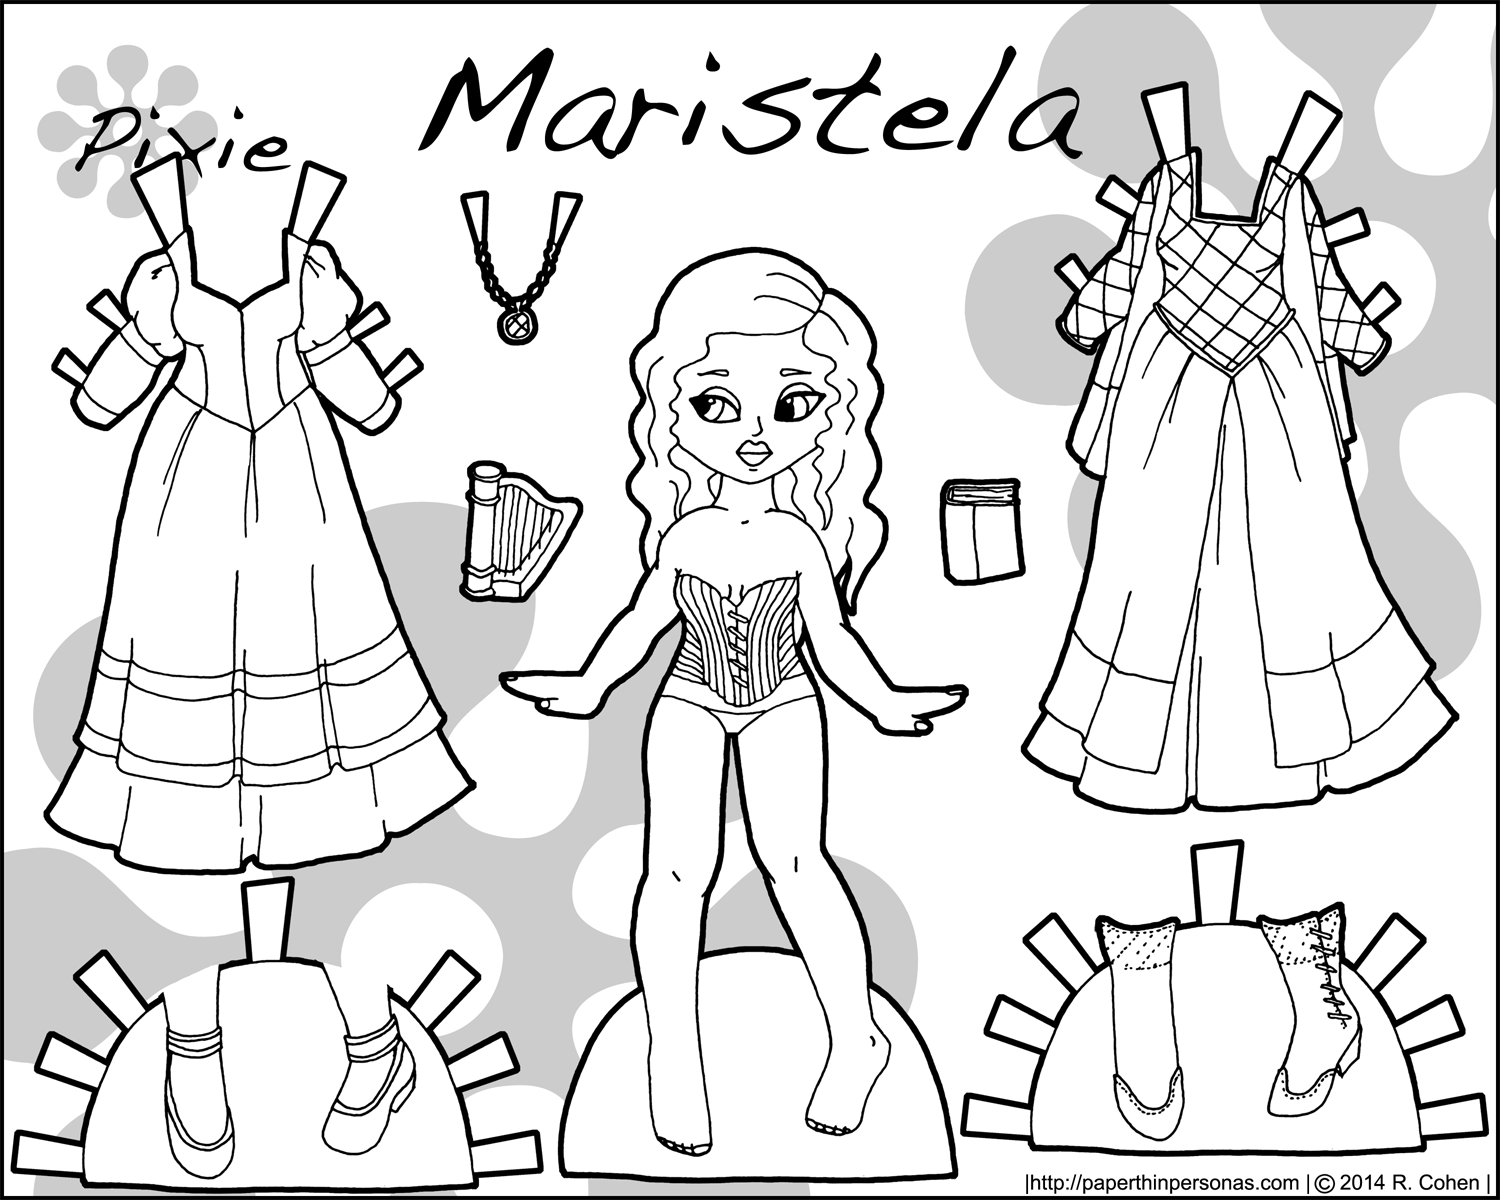 A Purple Princess Paper Doll Named Maristela • Paper Thin ...